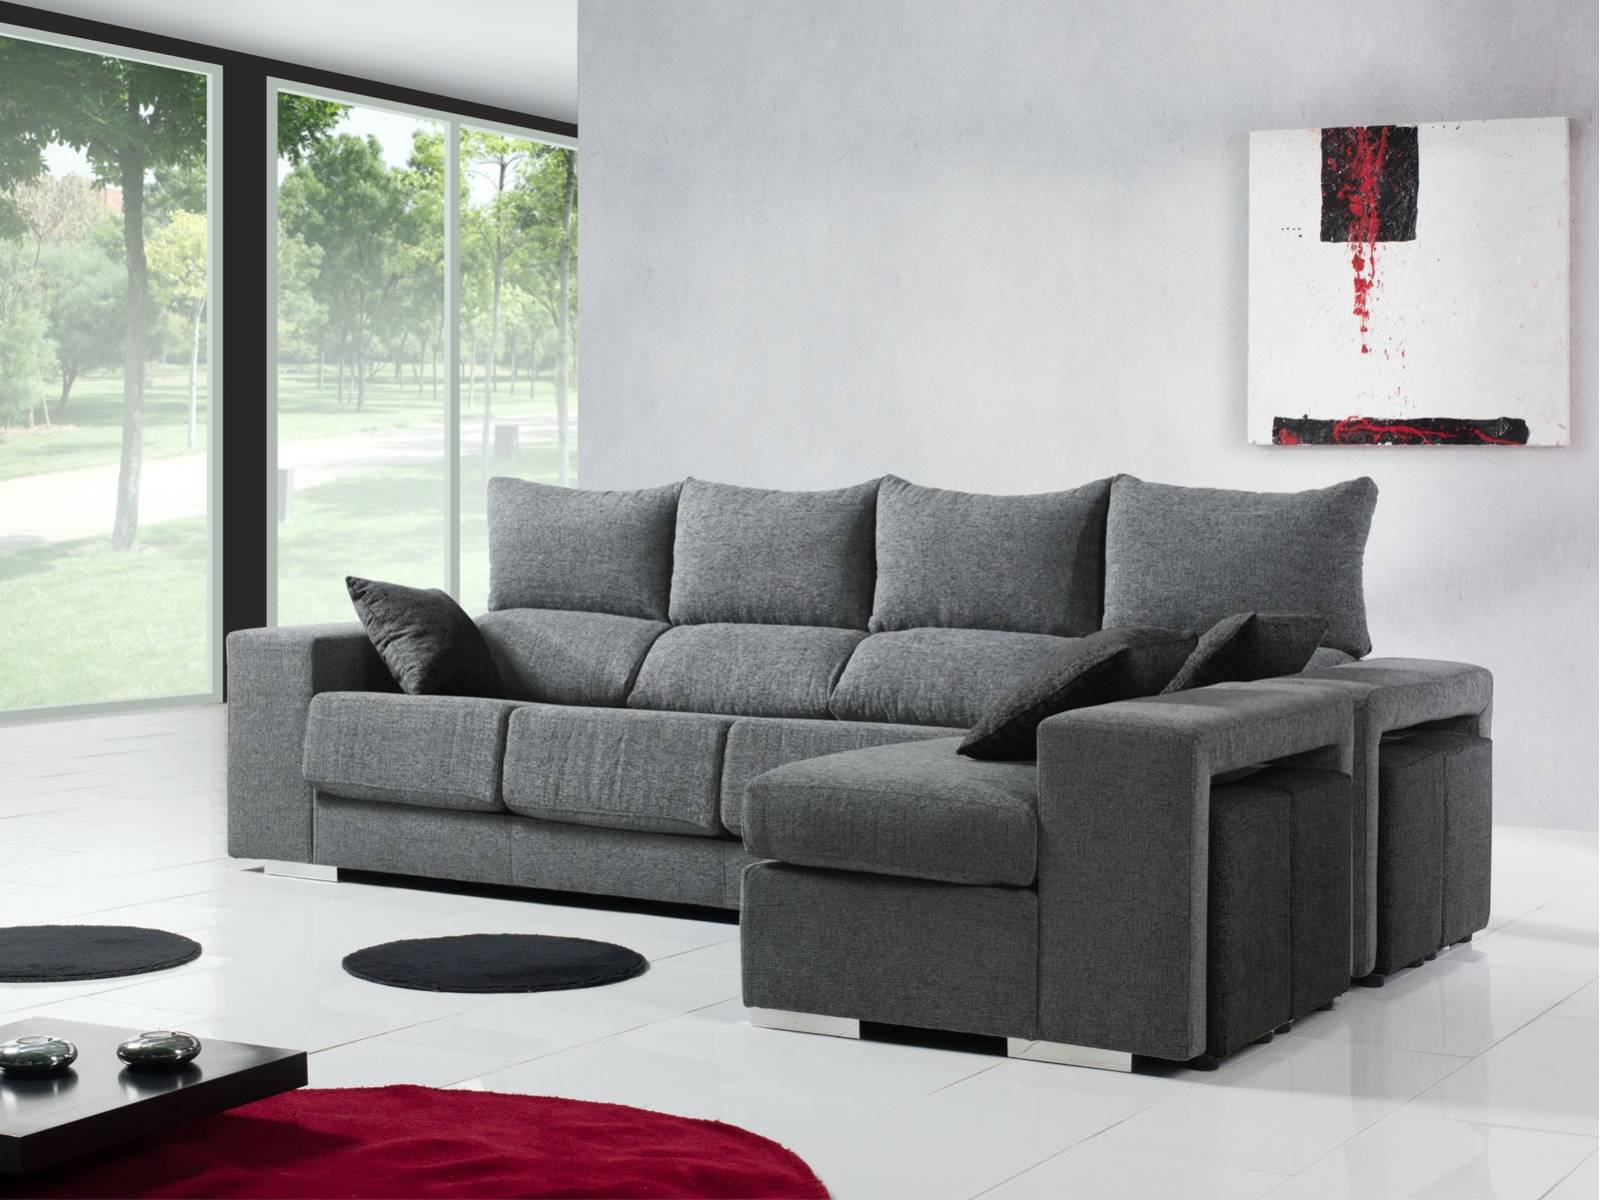 sofa chaise longue 4 puff